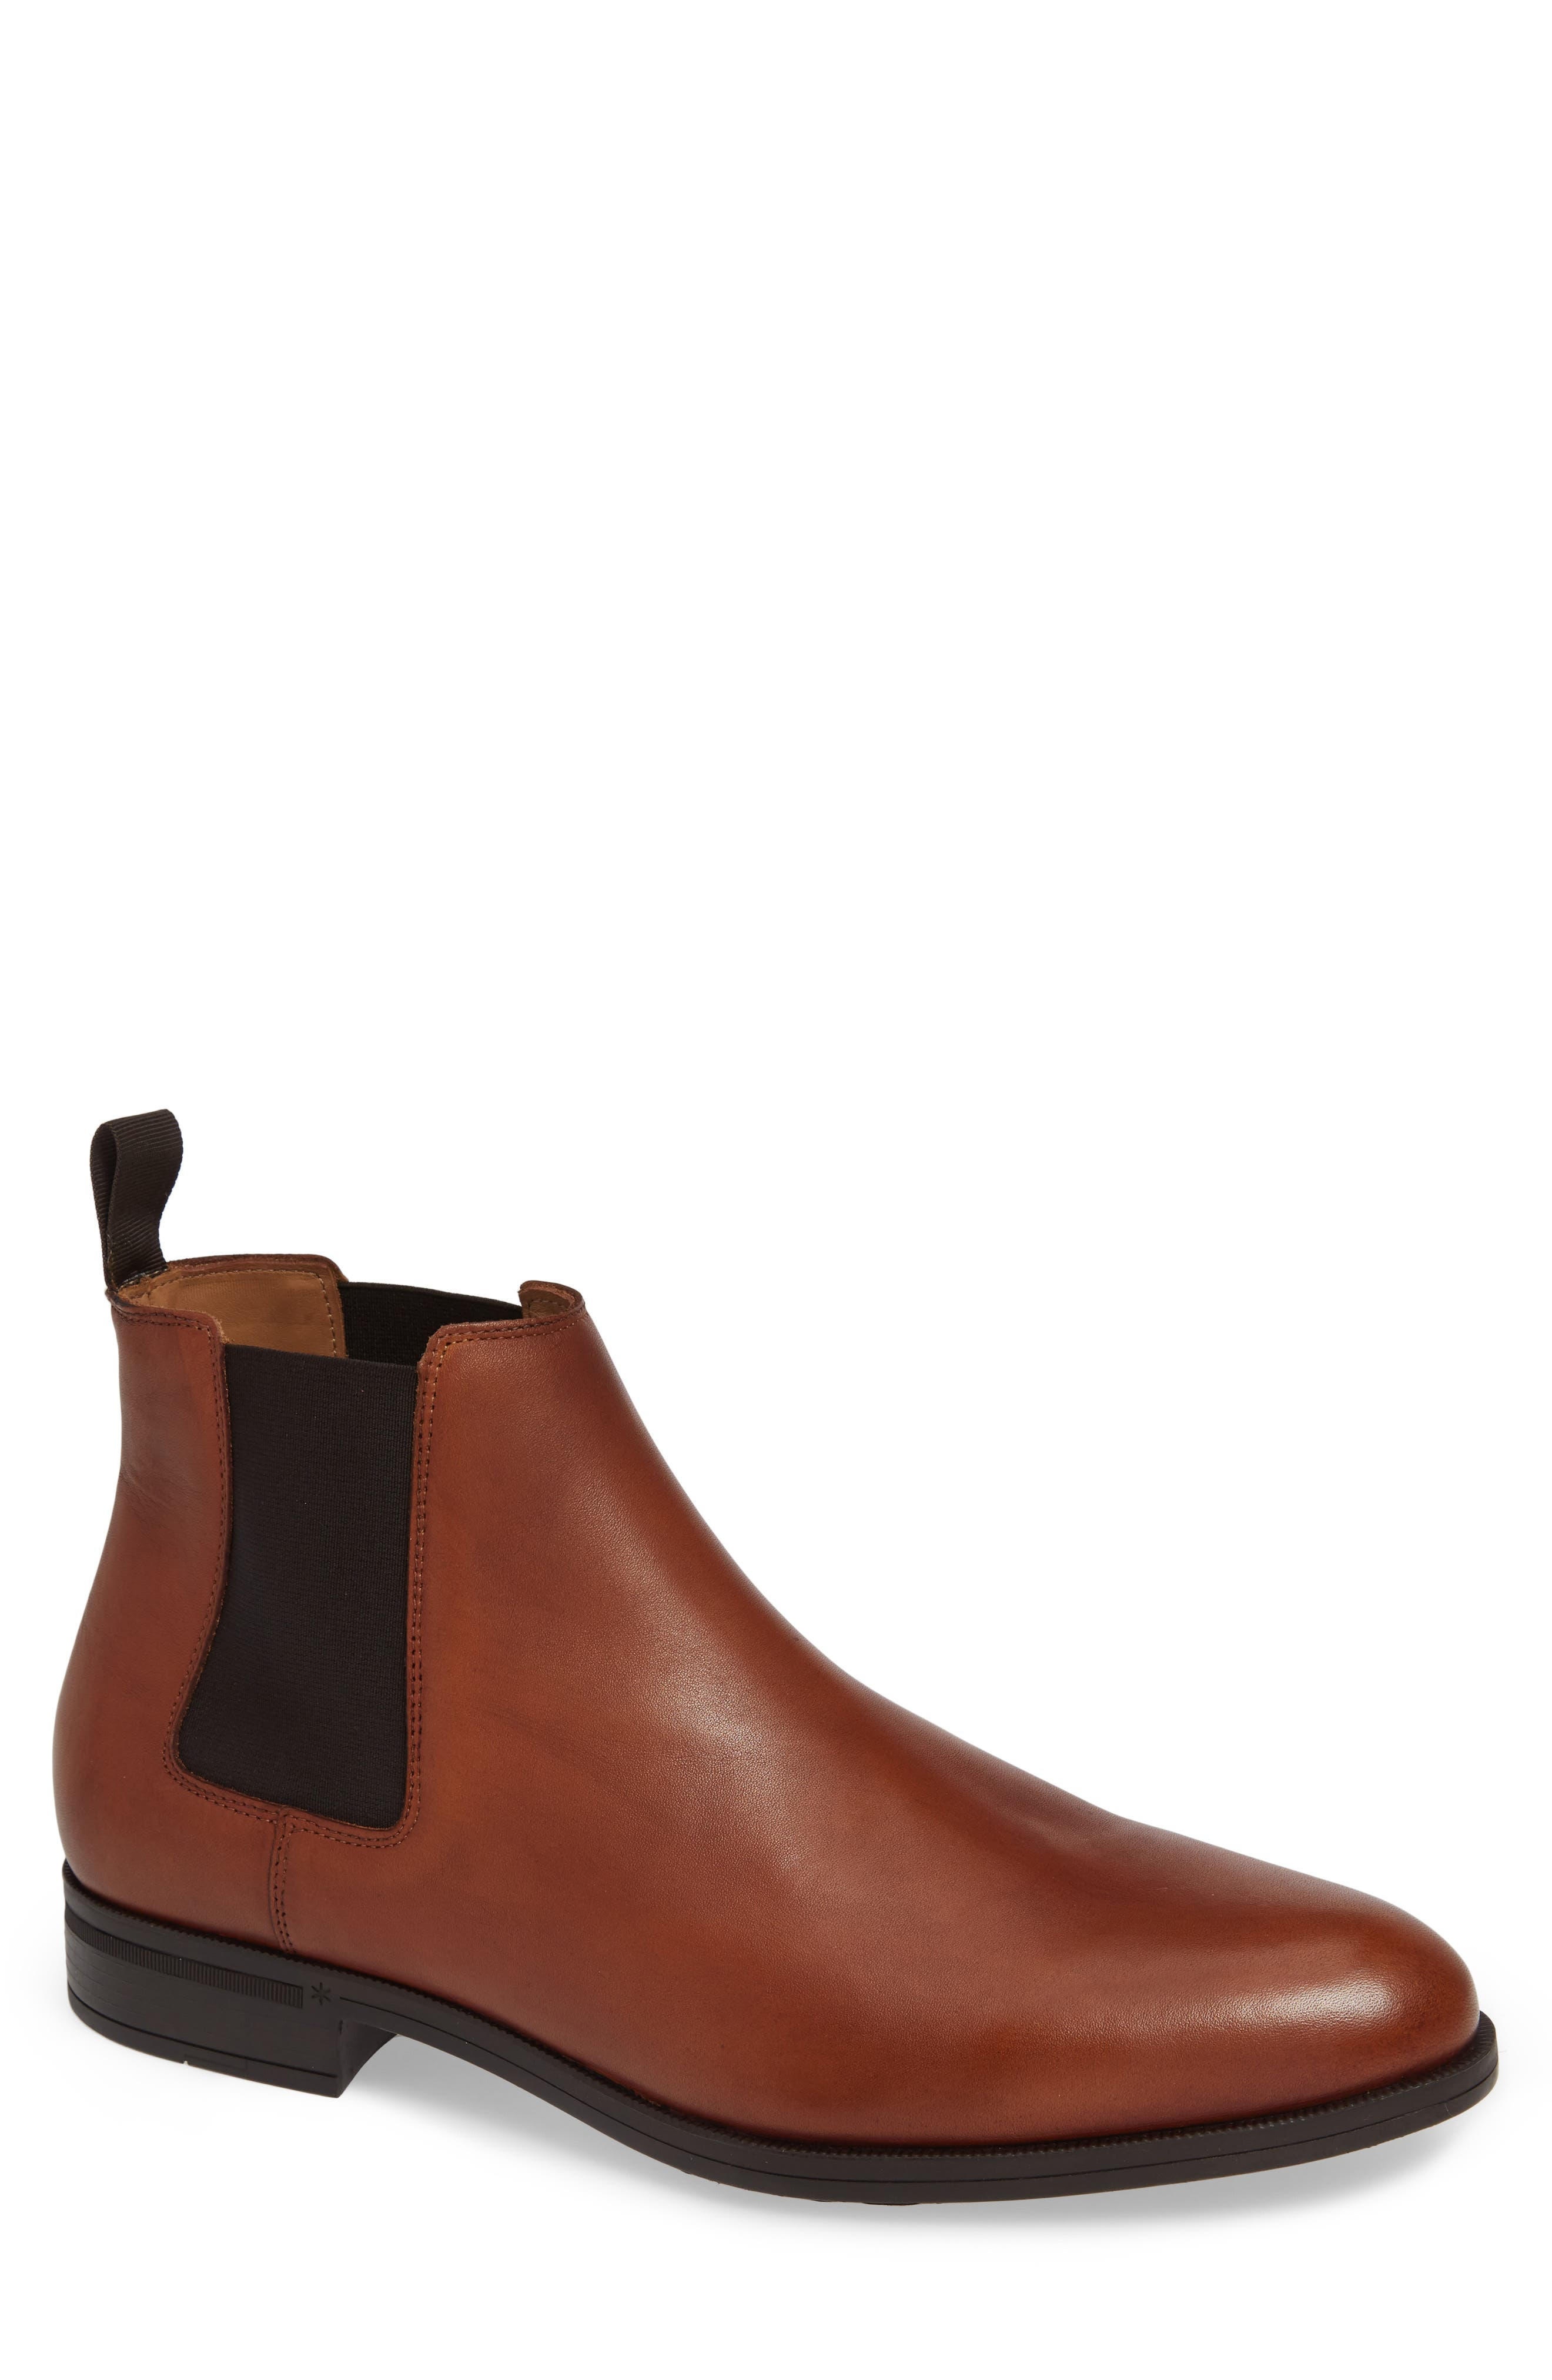 VINCE CAMUTO, Ivo Mid Chelsea Boot, Main thumbnail 1, color, COGNAC LEATHER